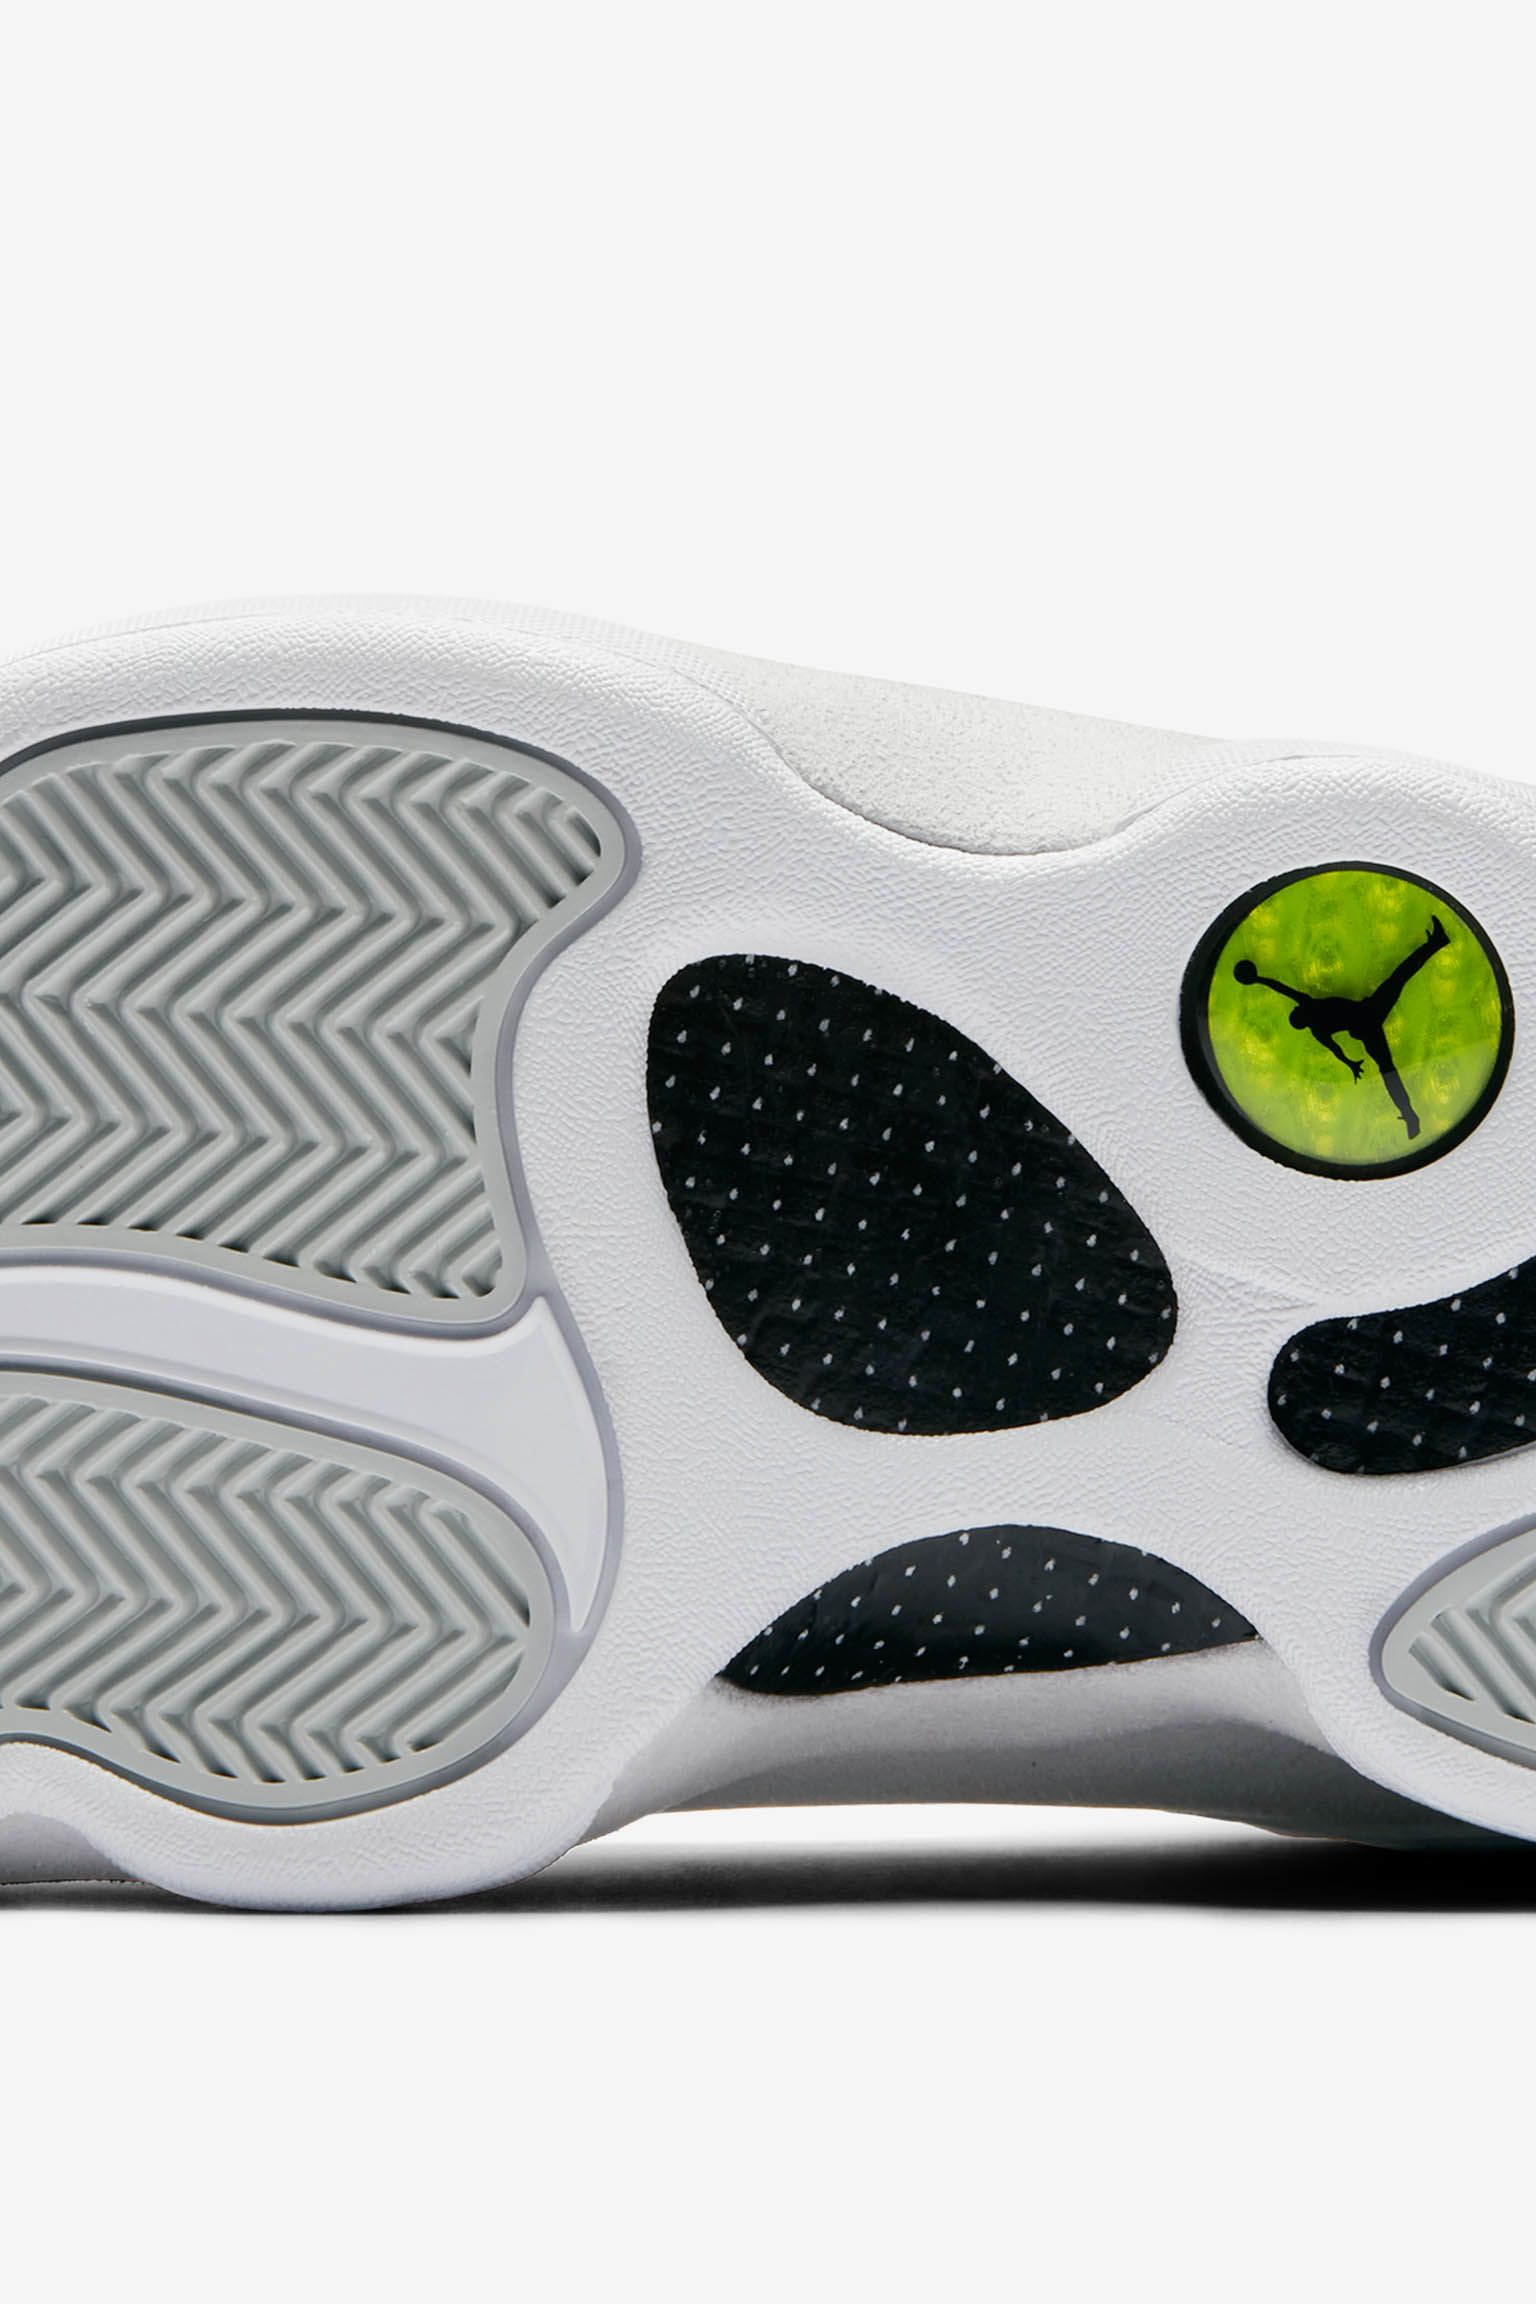 Air Jordan 13 Retro Low 'Pure Platinum & White' Release Date